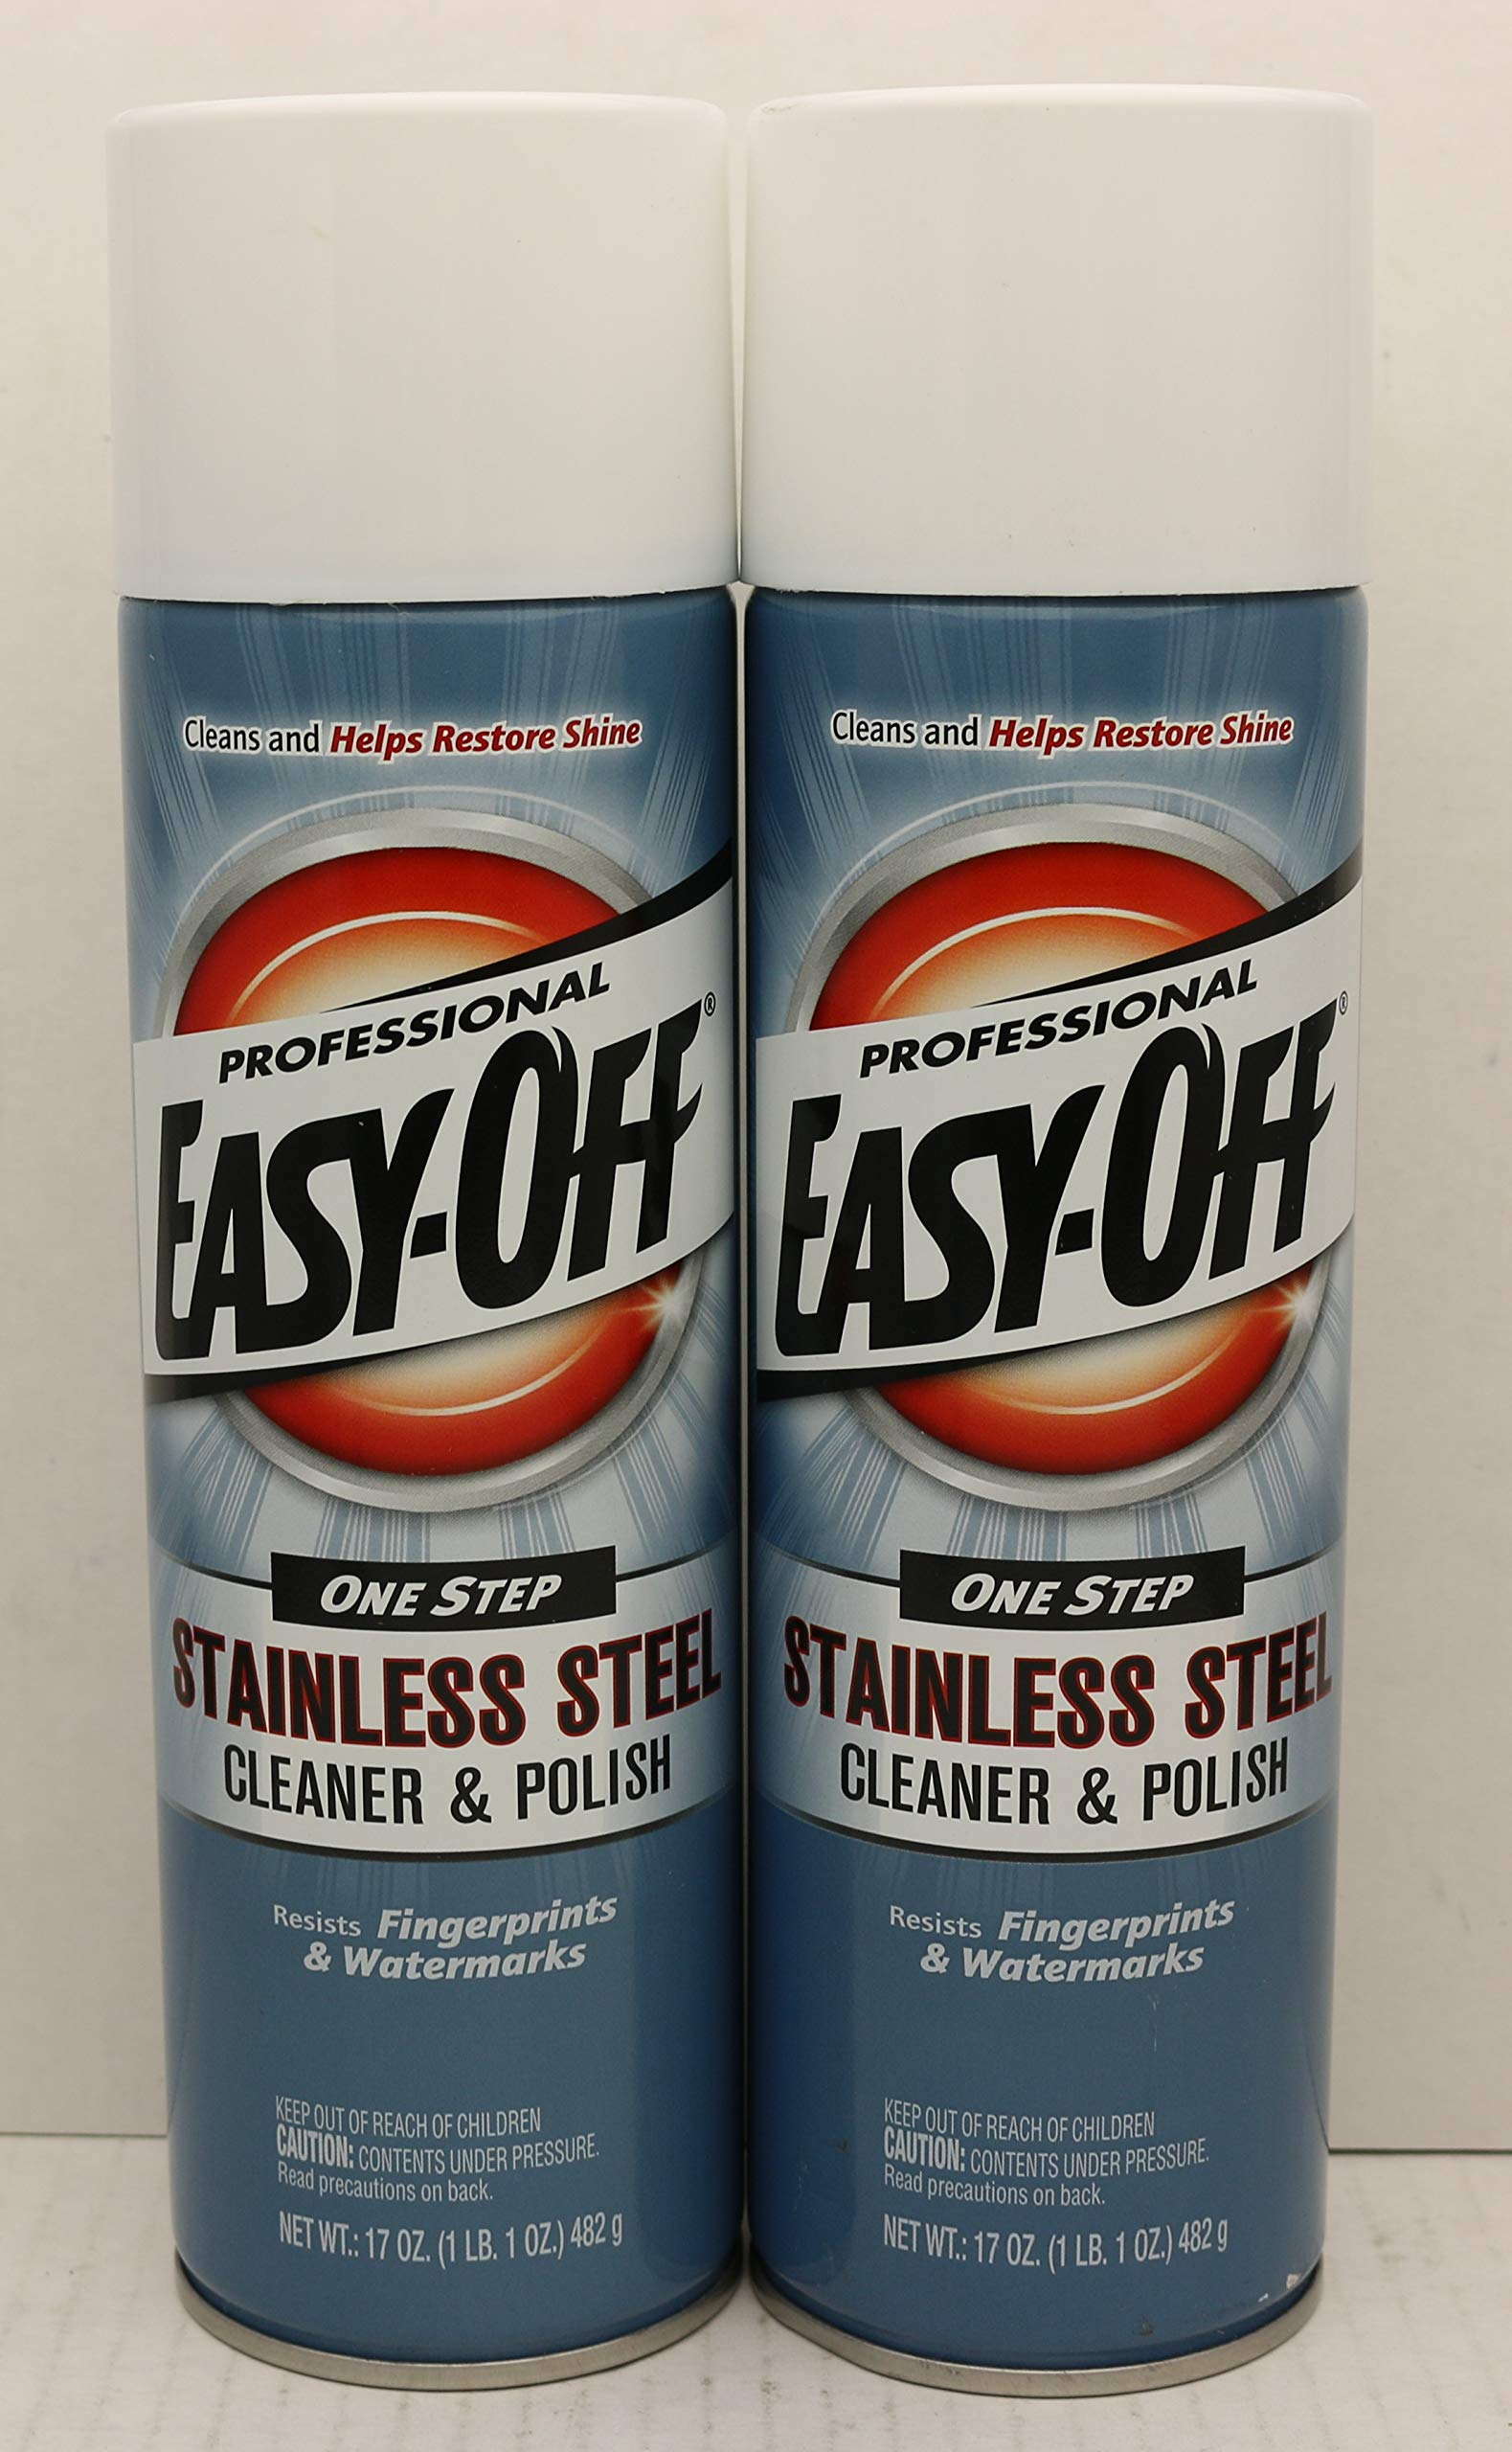 Easy Off Professional Easy-off, Stainless Steel Cleaner and Polish, 17 Ounce, 2 Pack